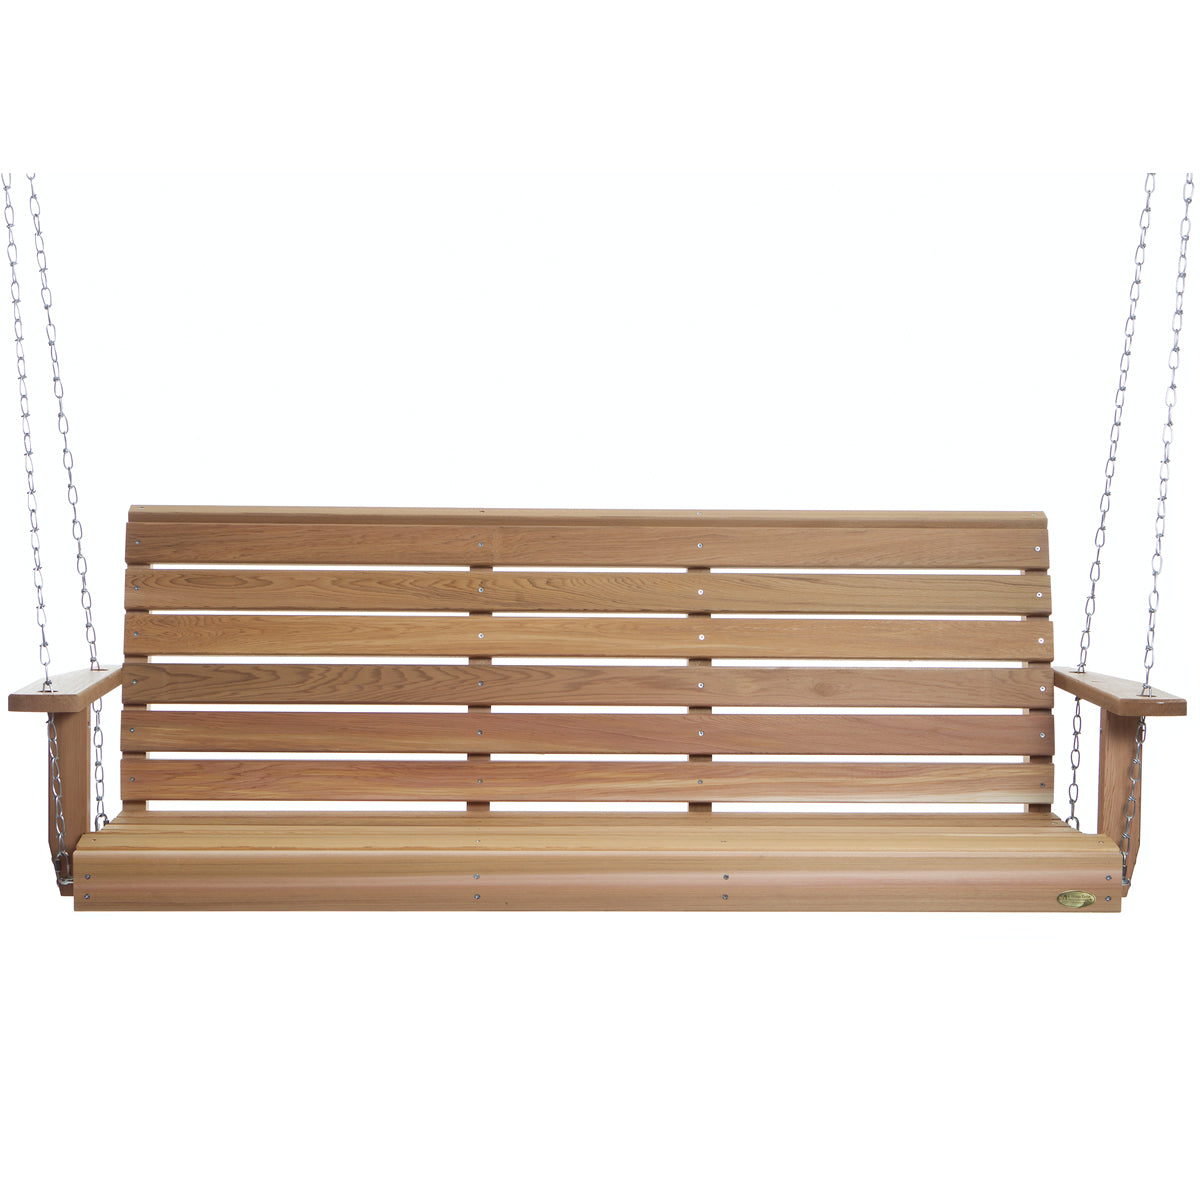 Porch Swing 6' With Comfort Springs